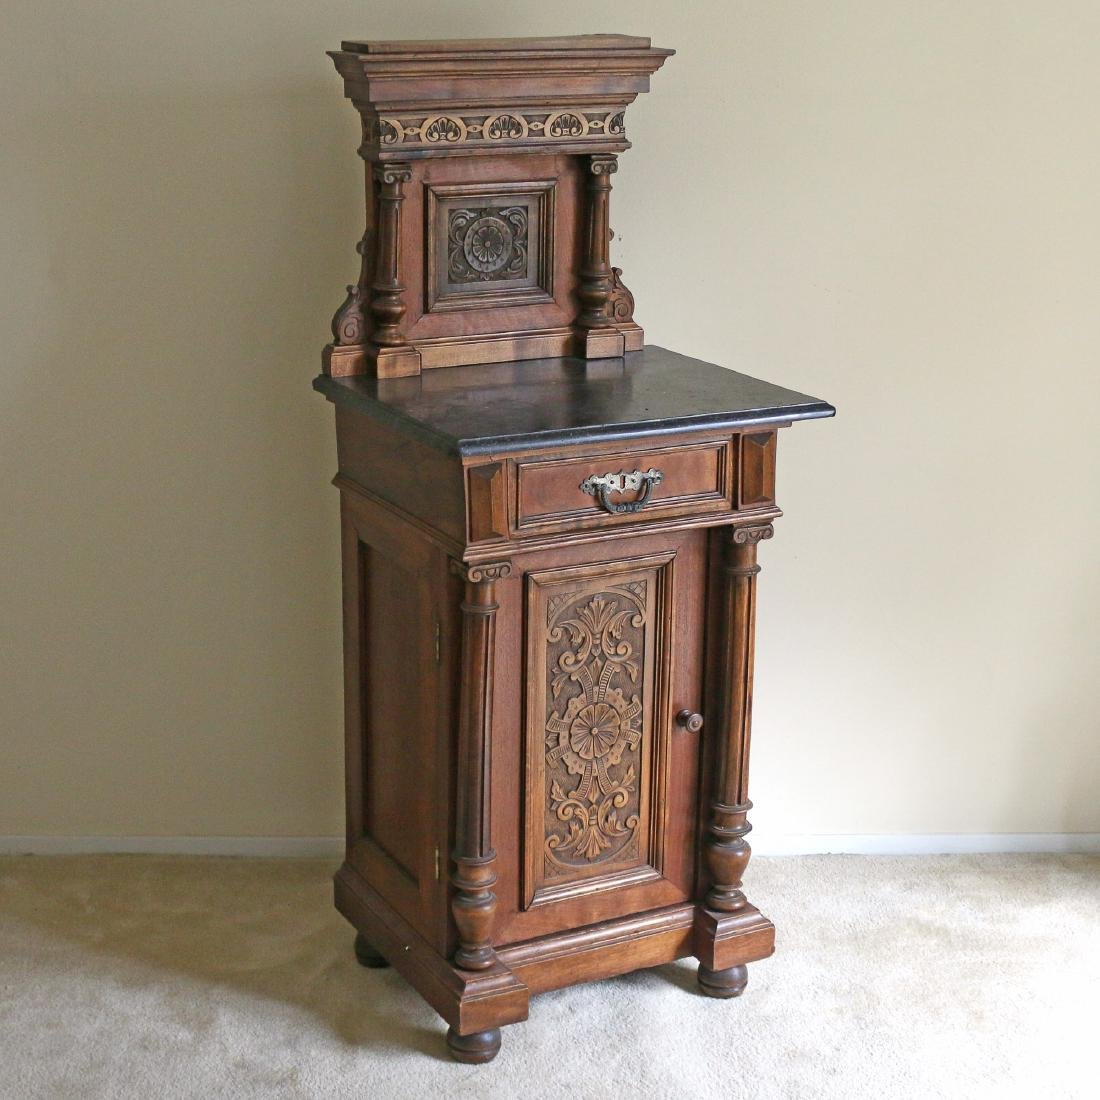 AESTHETIC PERIOD CARVED BEDSIDE TABLE